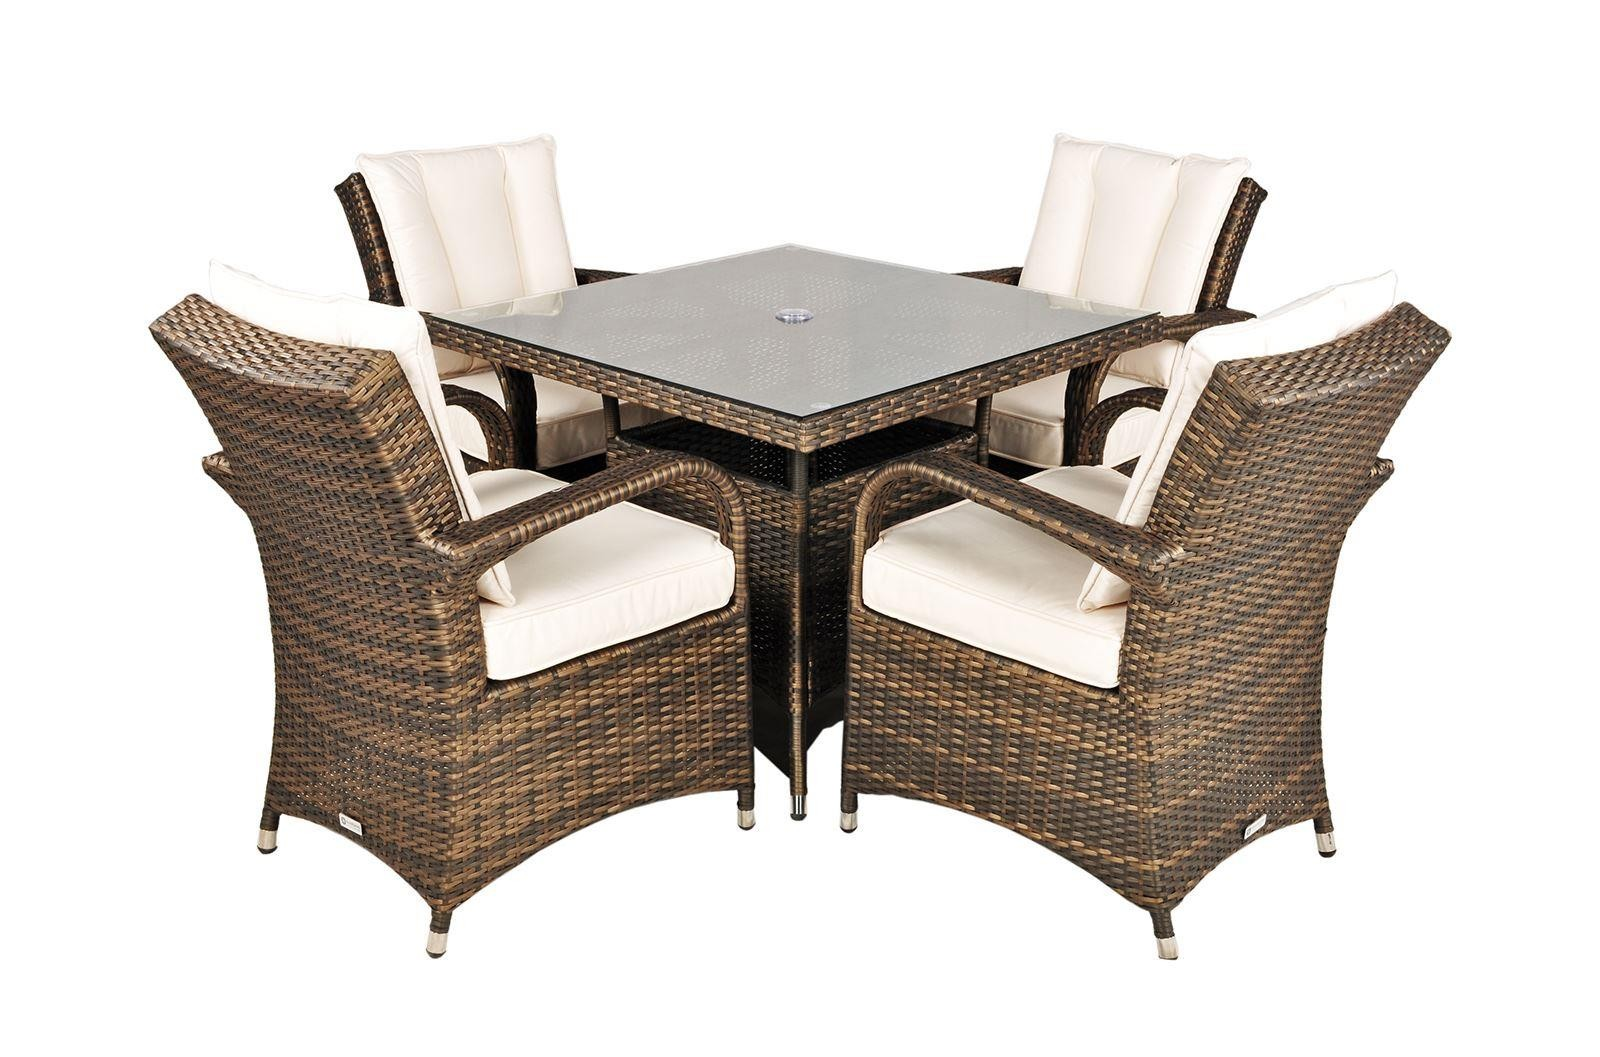 Side of Arizona Rattan [4 Seat Dining Set with Square Table]